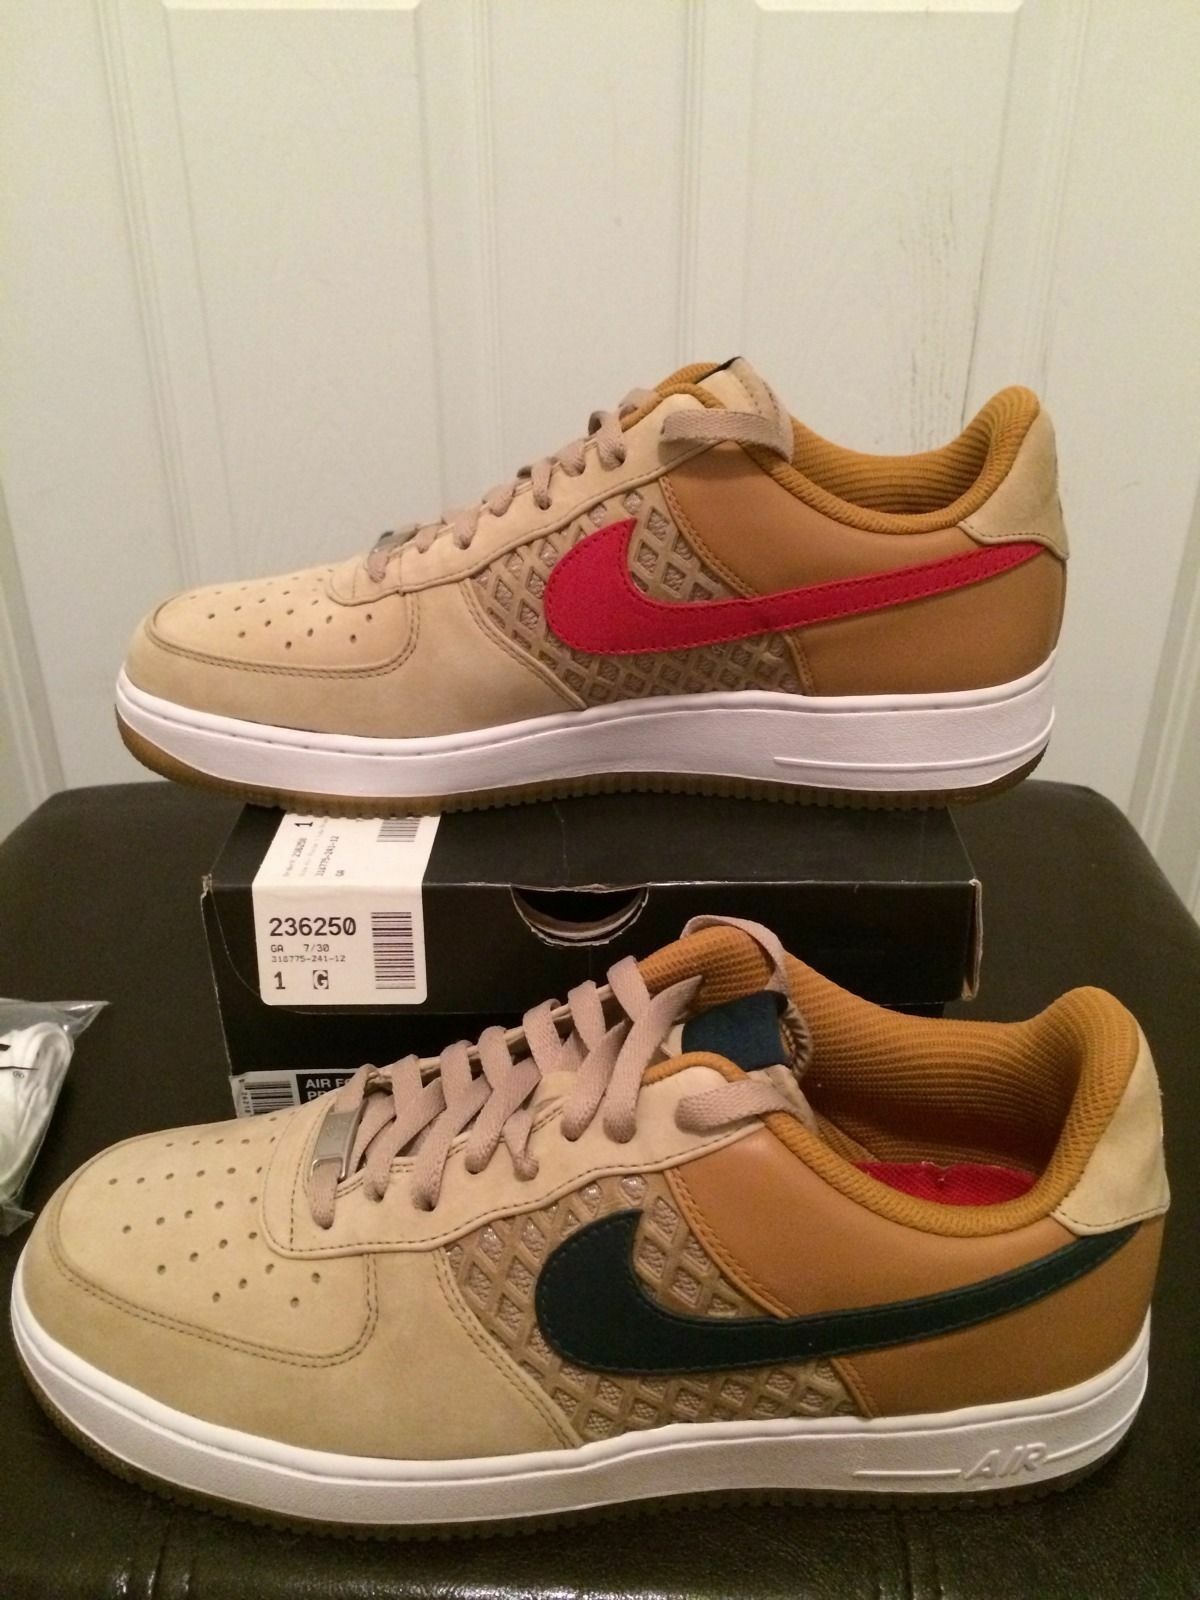 Nike Air Force Airforce af1s AF1 birds nest max khaki hs qs flyknit free freerun Comfortable and good-looking